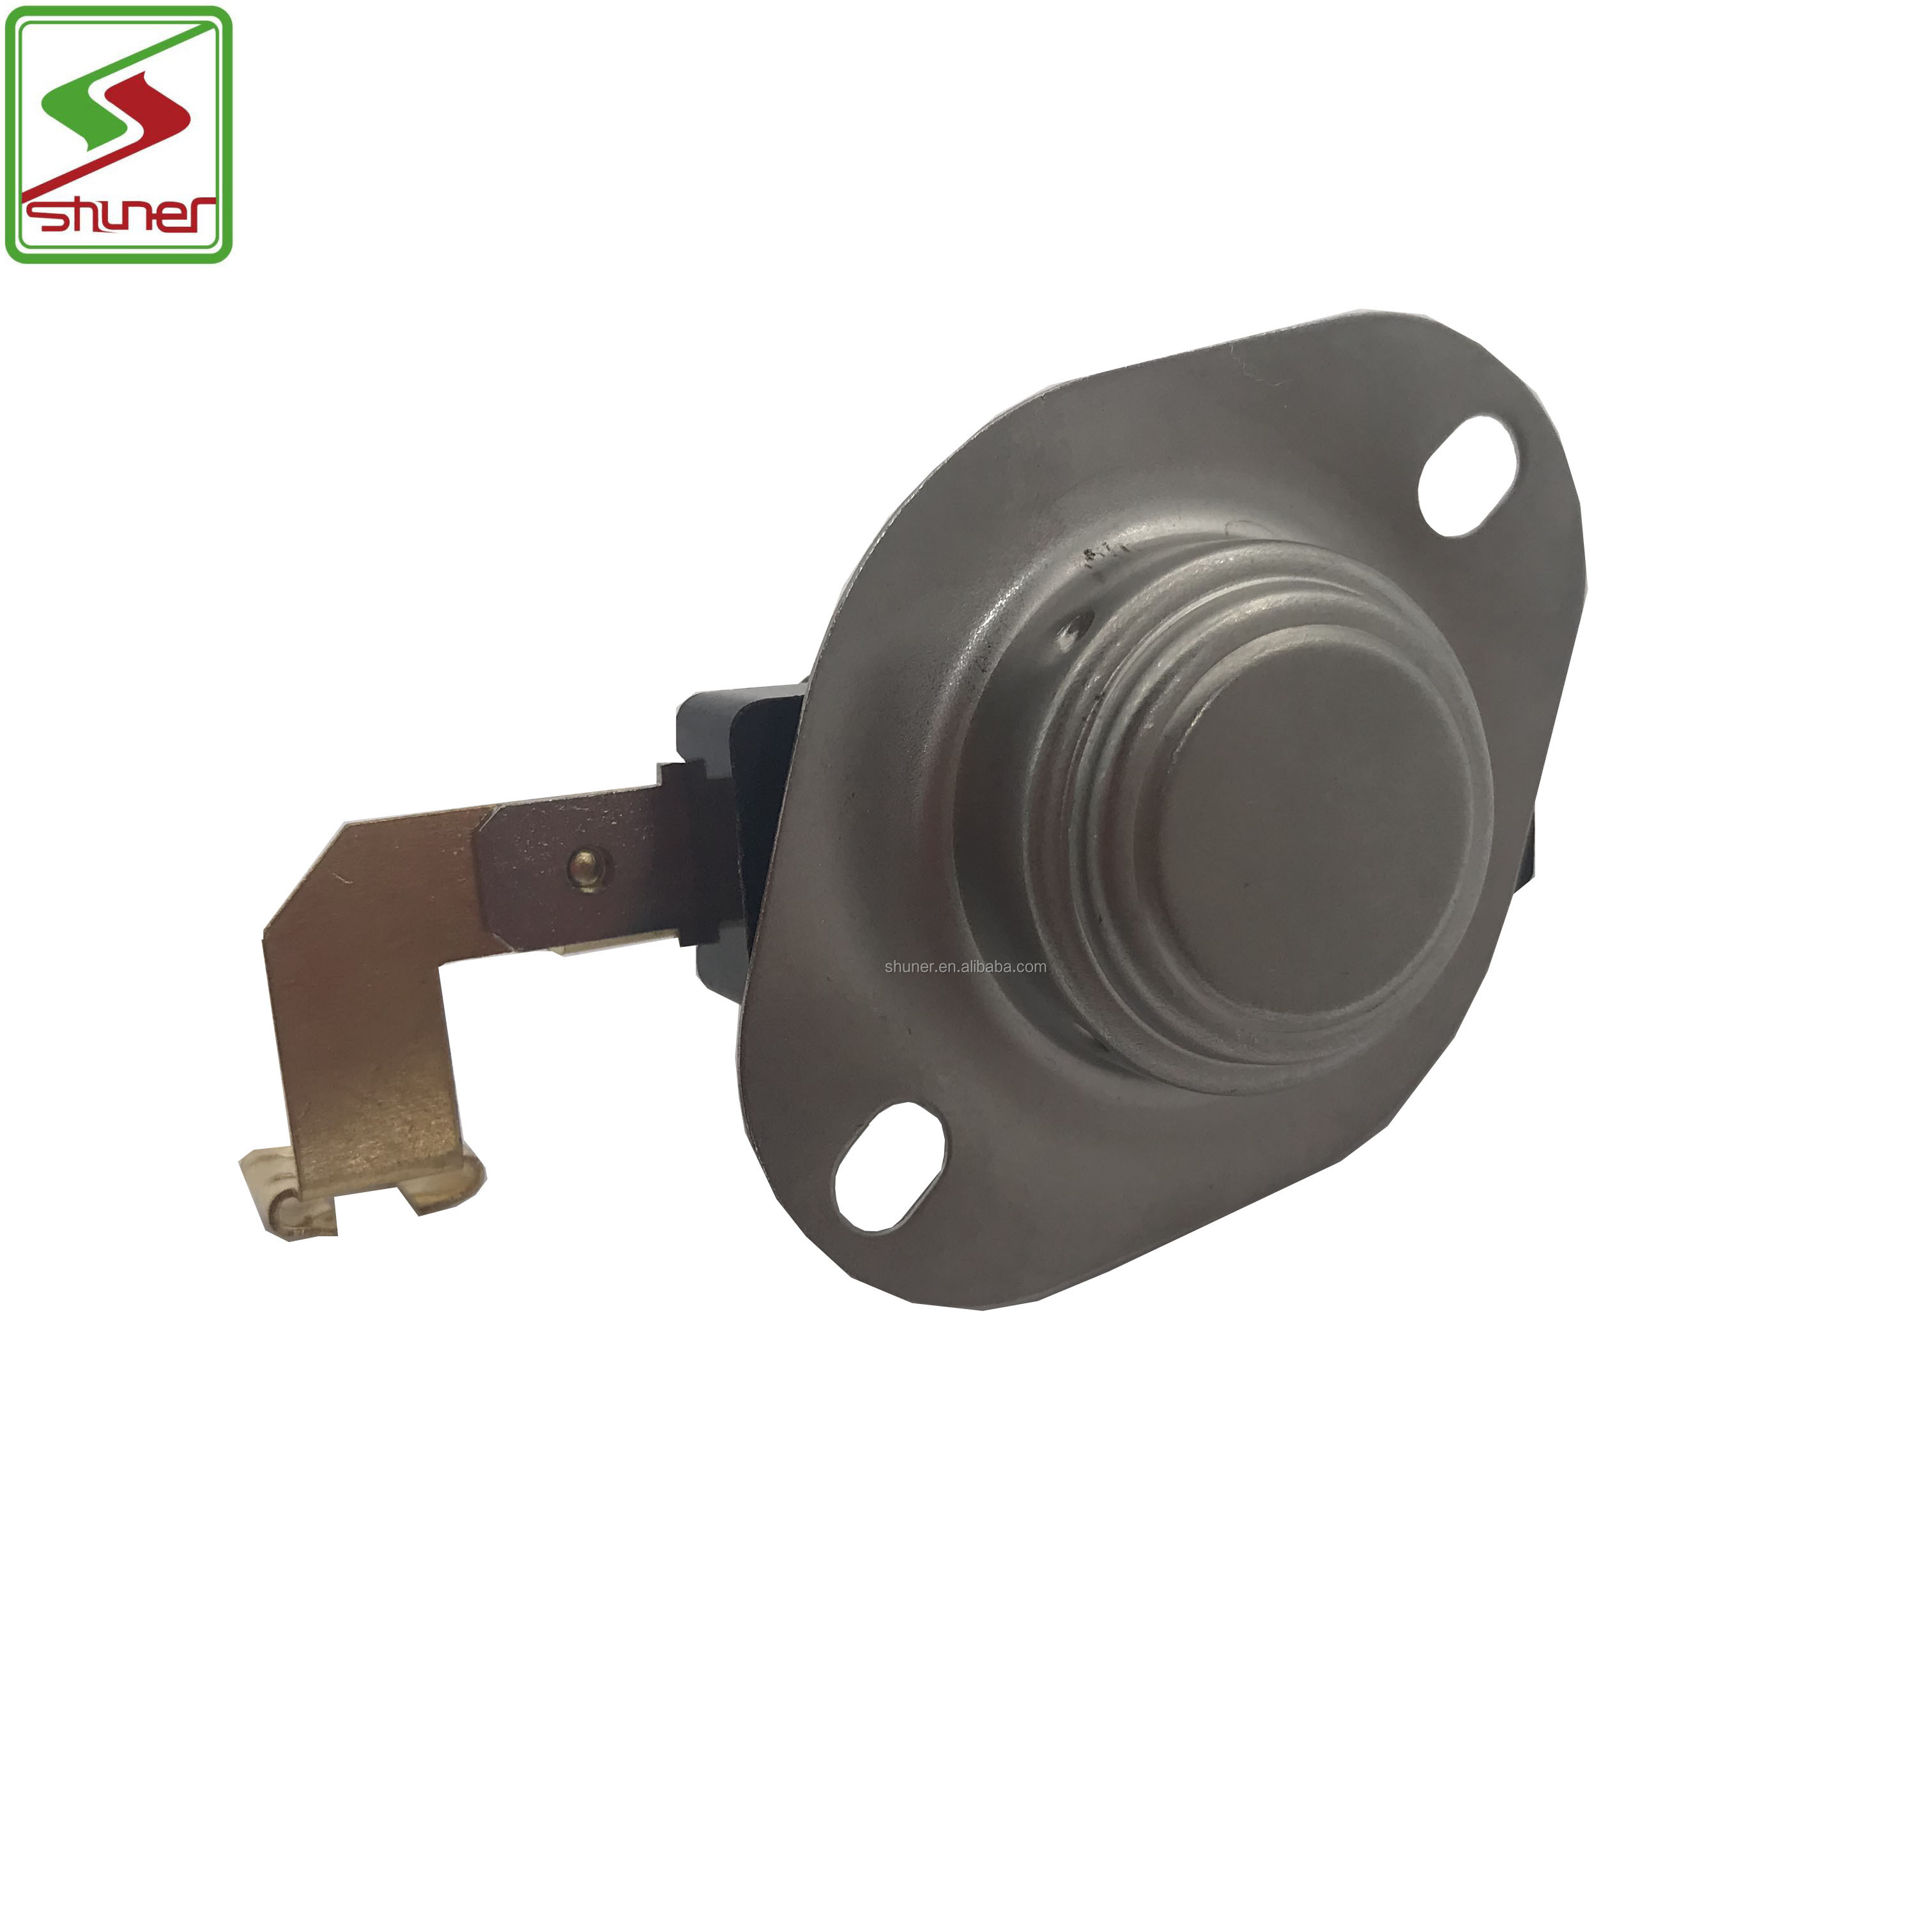 High quality 3977767 Dryer Thermostat Replacement part for Whirlpool & Kenmore Dryer - Replaces 3399693 WP3977767VP